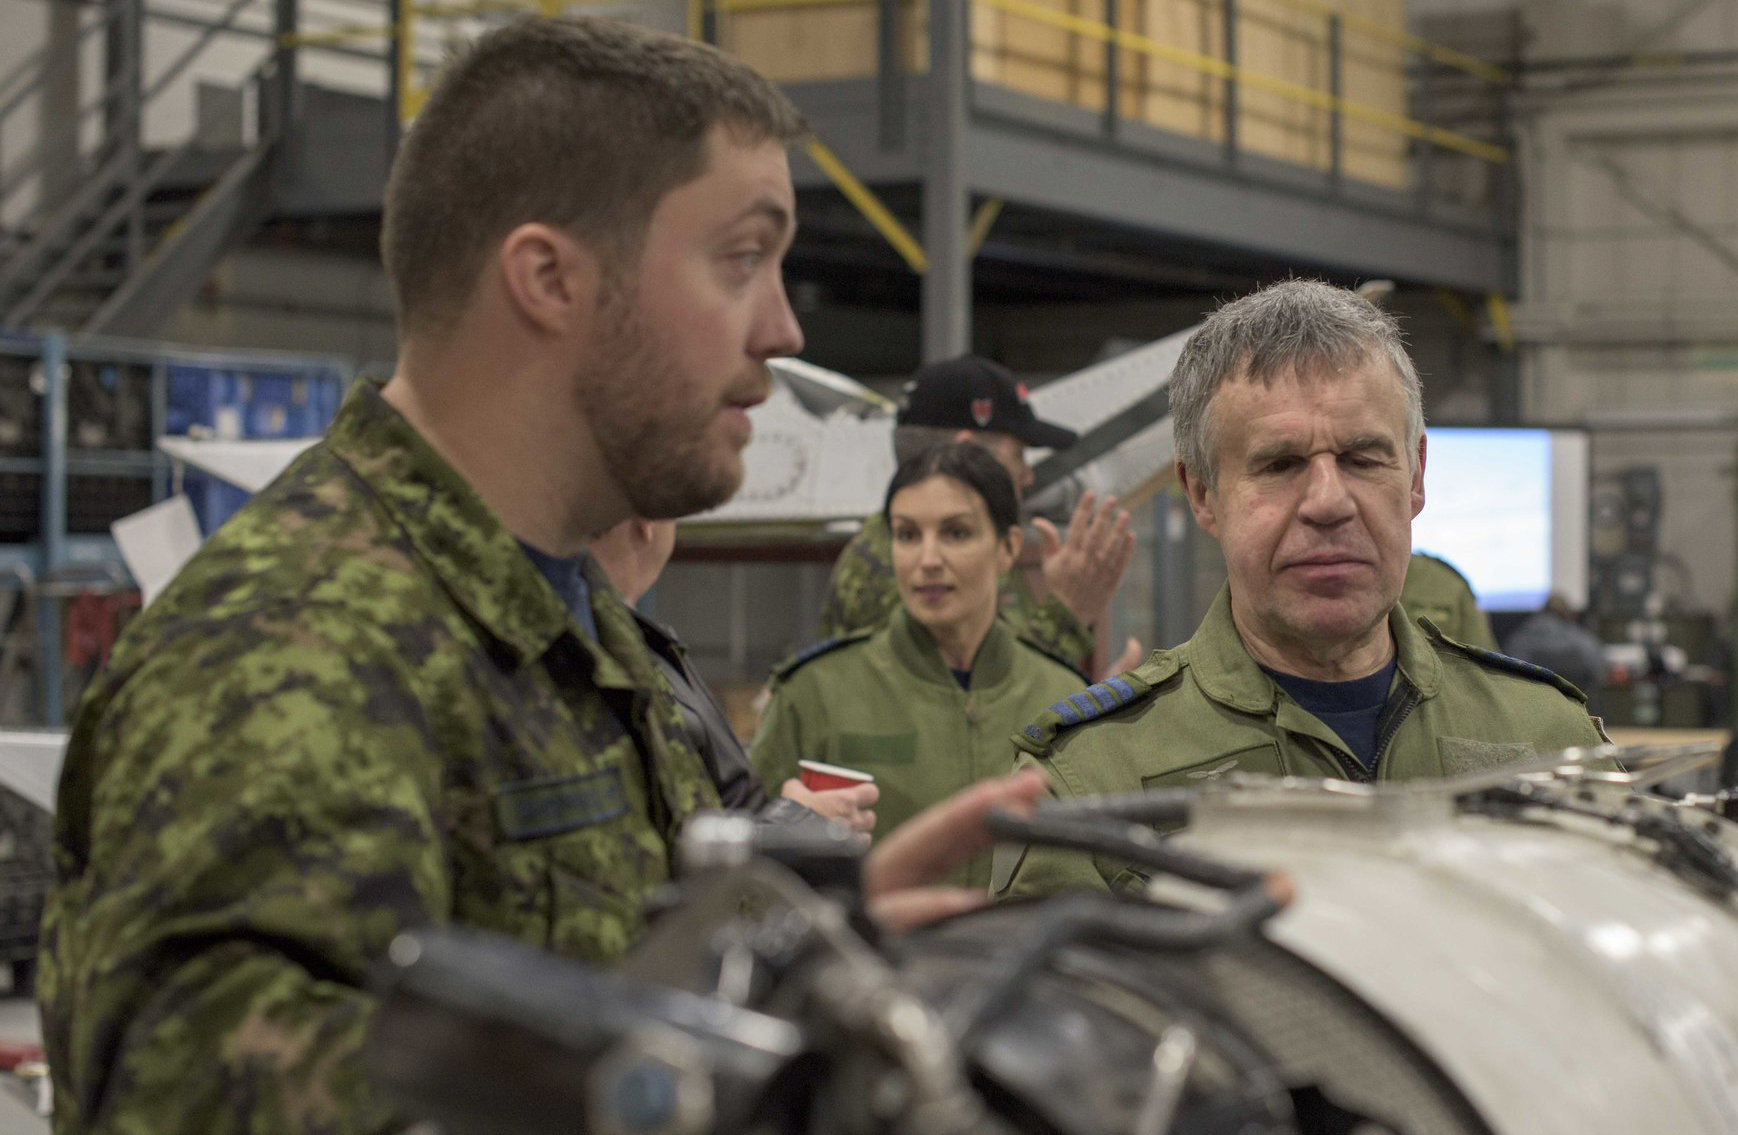 Corporal Ben Sheppard (left) talks about the motor of the CC-138 Twin Otter aircraft with Honorary Colonel Terry Kelly during  the honorary colonels conference hosted by Joint Task Force (North) on May 29, 2019, in Yellowknife, Northwest Territories. PHOTO : Captain Soomin Kim